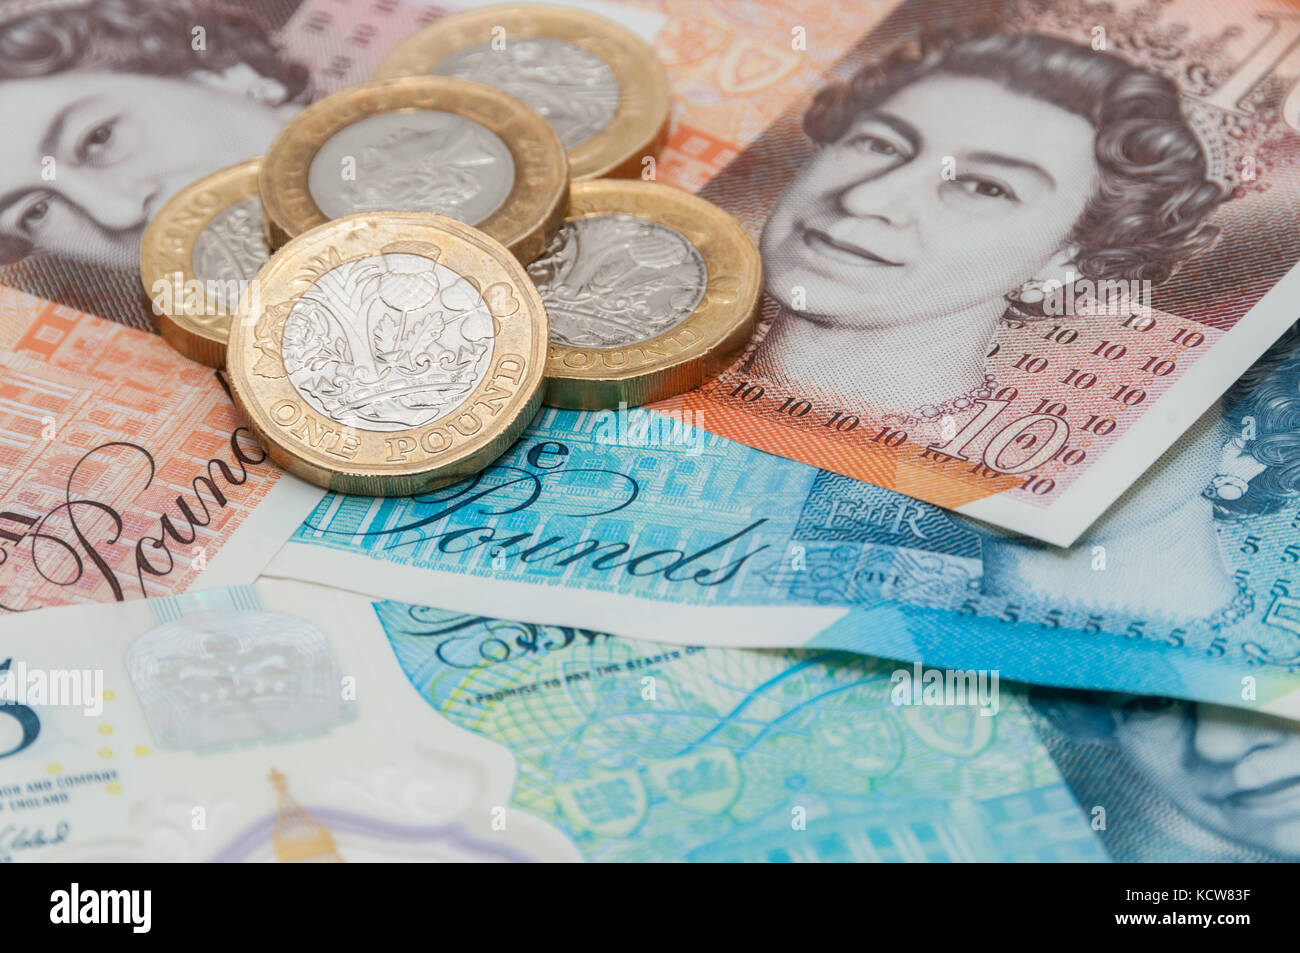 New UK currency, 10 pounds, 5 ponds, 1 pound coins Stock Photo